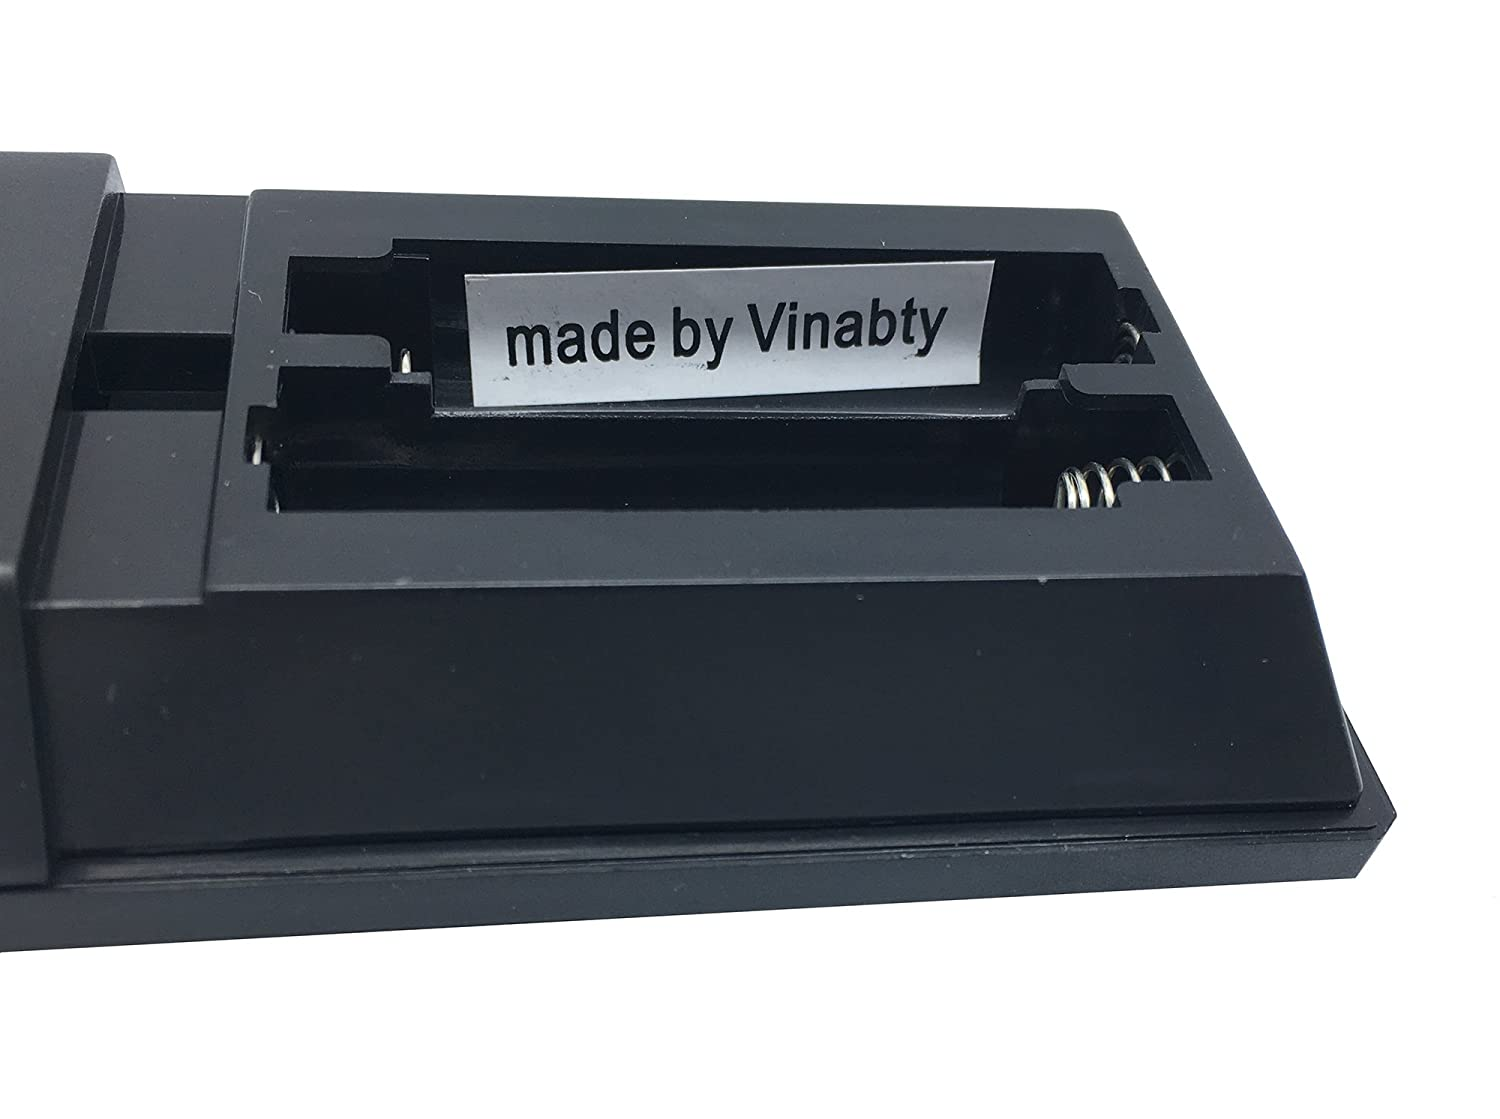 New RMT-VB100U Replace Remote fit for Sony Blu Ray Player BDP-BX150 BDP-BX350 BDP-BX550 BDP-BX650 BDP-S1500 BDP-S2500 BDP-S2900 BDP-S3500 BDP-S4500 BDP-S5500 BDP-S6500